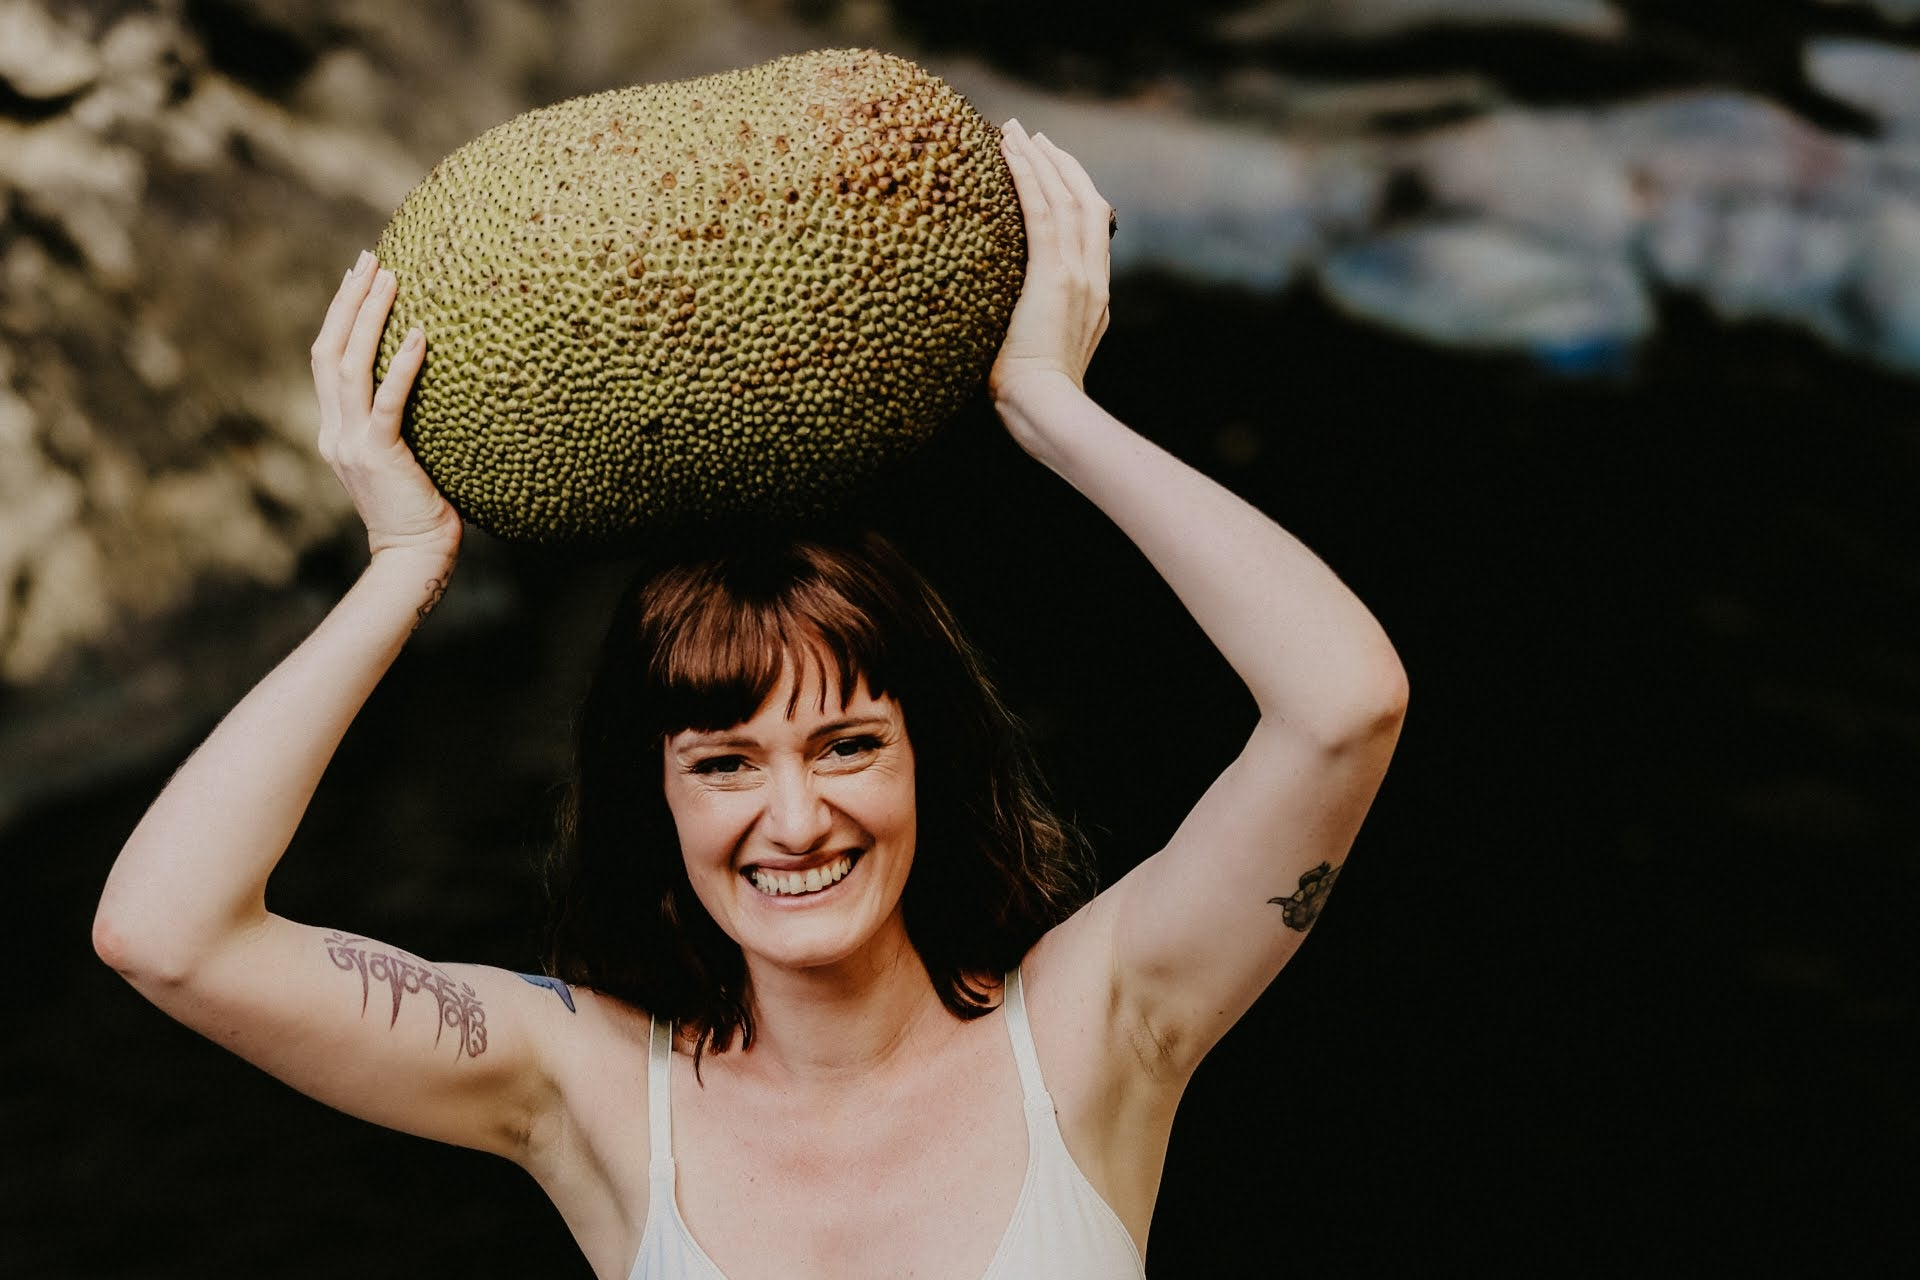 charada holding a jackfruit above her head